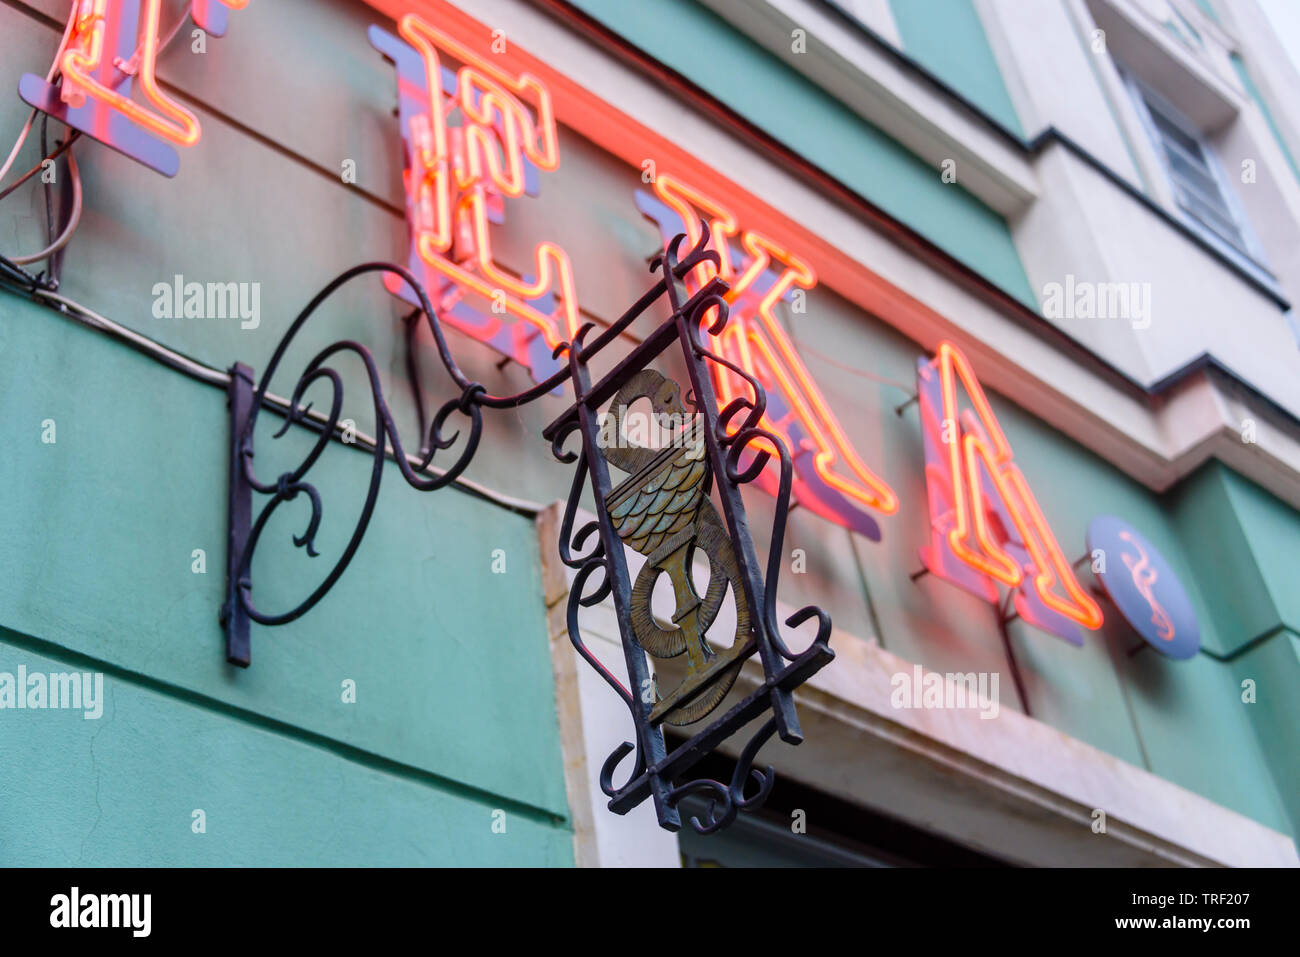 Neon sign saying 'Apteka' with a traditional snake symbol outside a pharmacy chemists shop, Wrocław, Wroclaw, Wroklaw, Poland - Stock Image